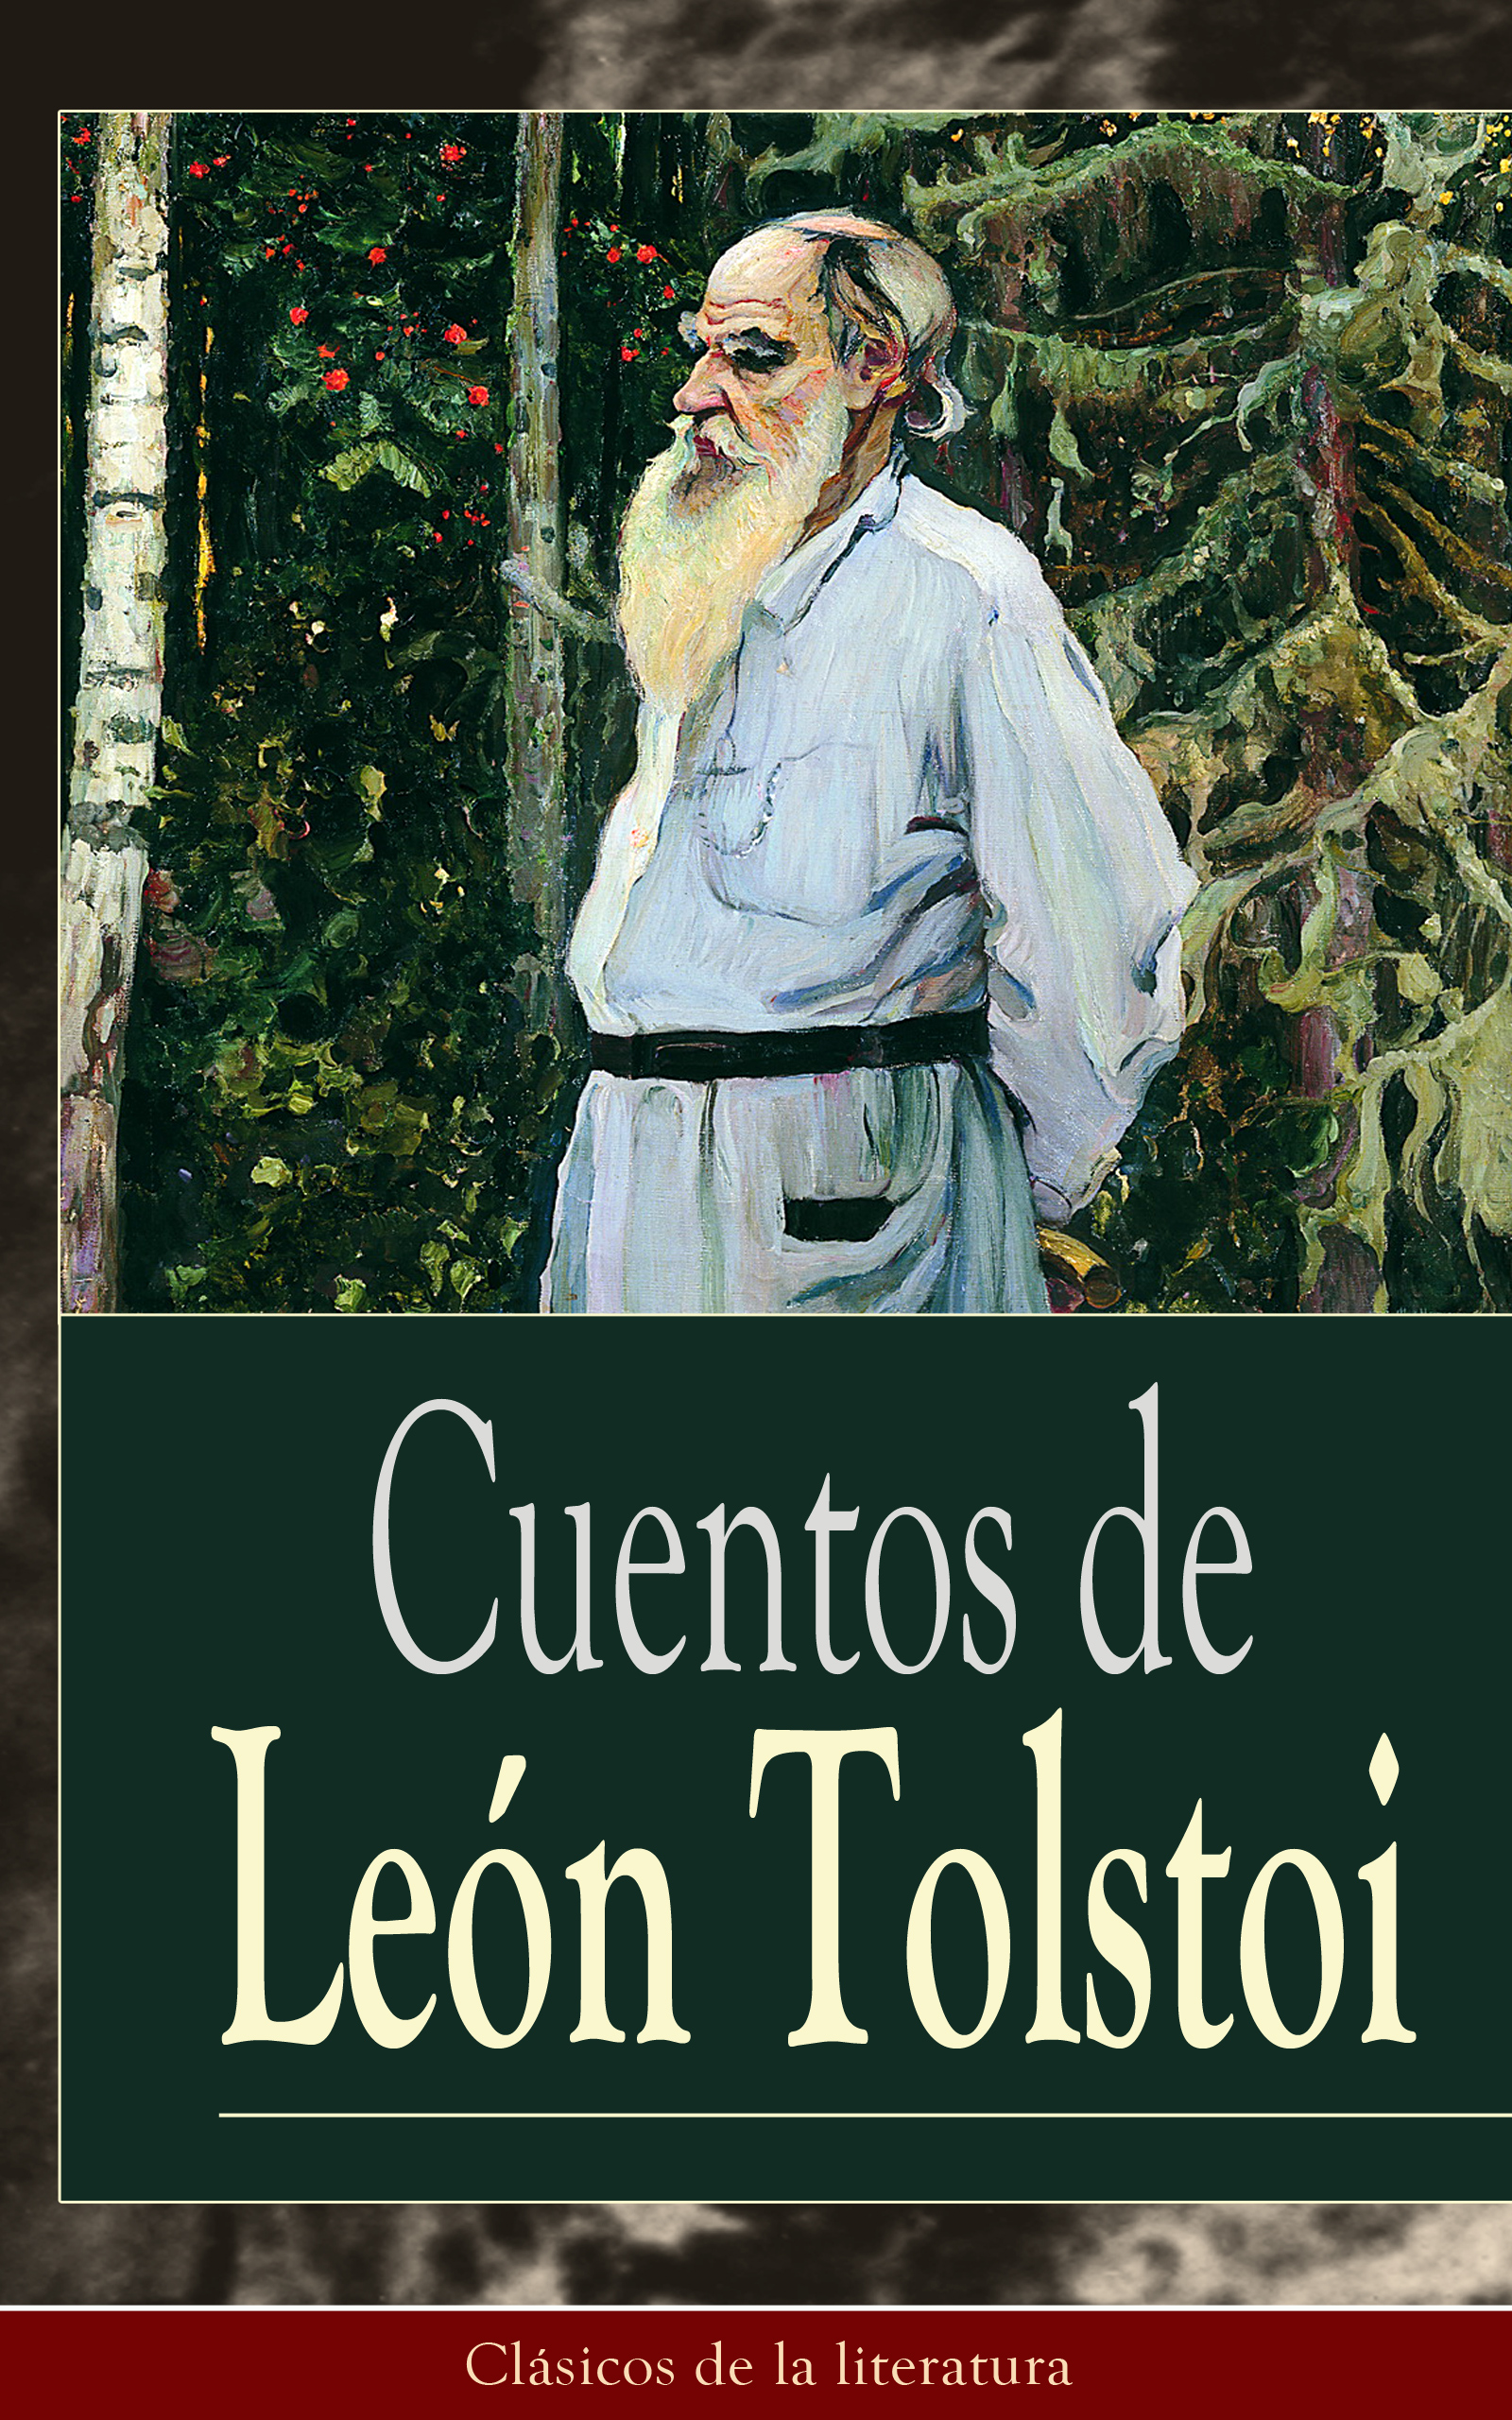 Leon Tolstoi Cuentos de León Tolstoi лев толстой tolstoi for the young select tales from tolstoi